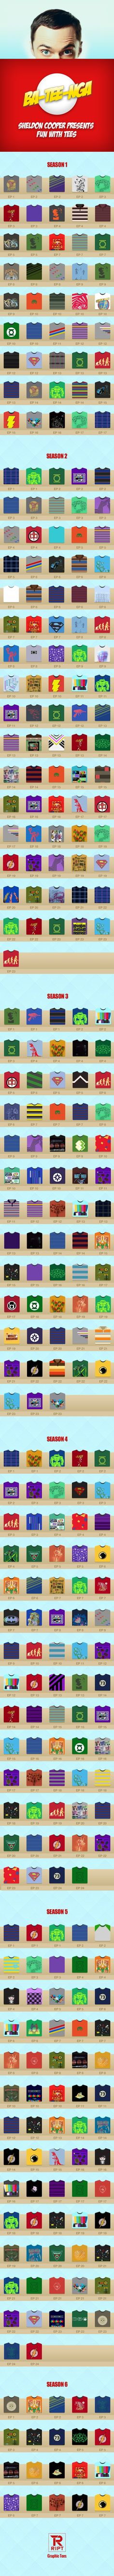 Every T-Shirt Sheldon Has Worn *ooh...SOMEone had a lot of time on their hands...?!!!;)*